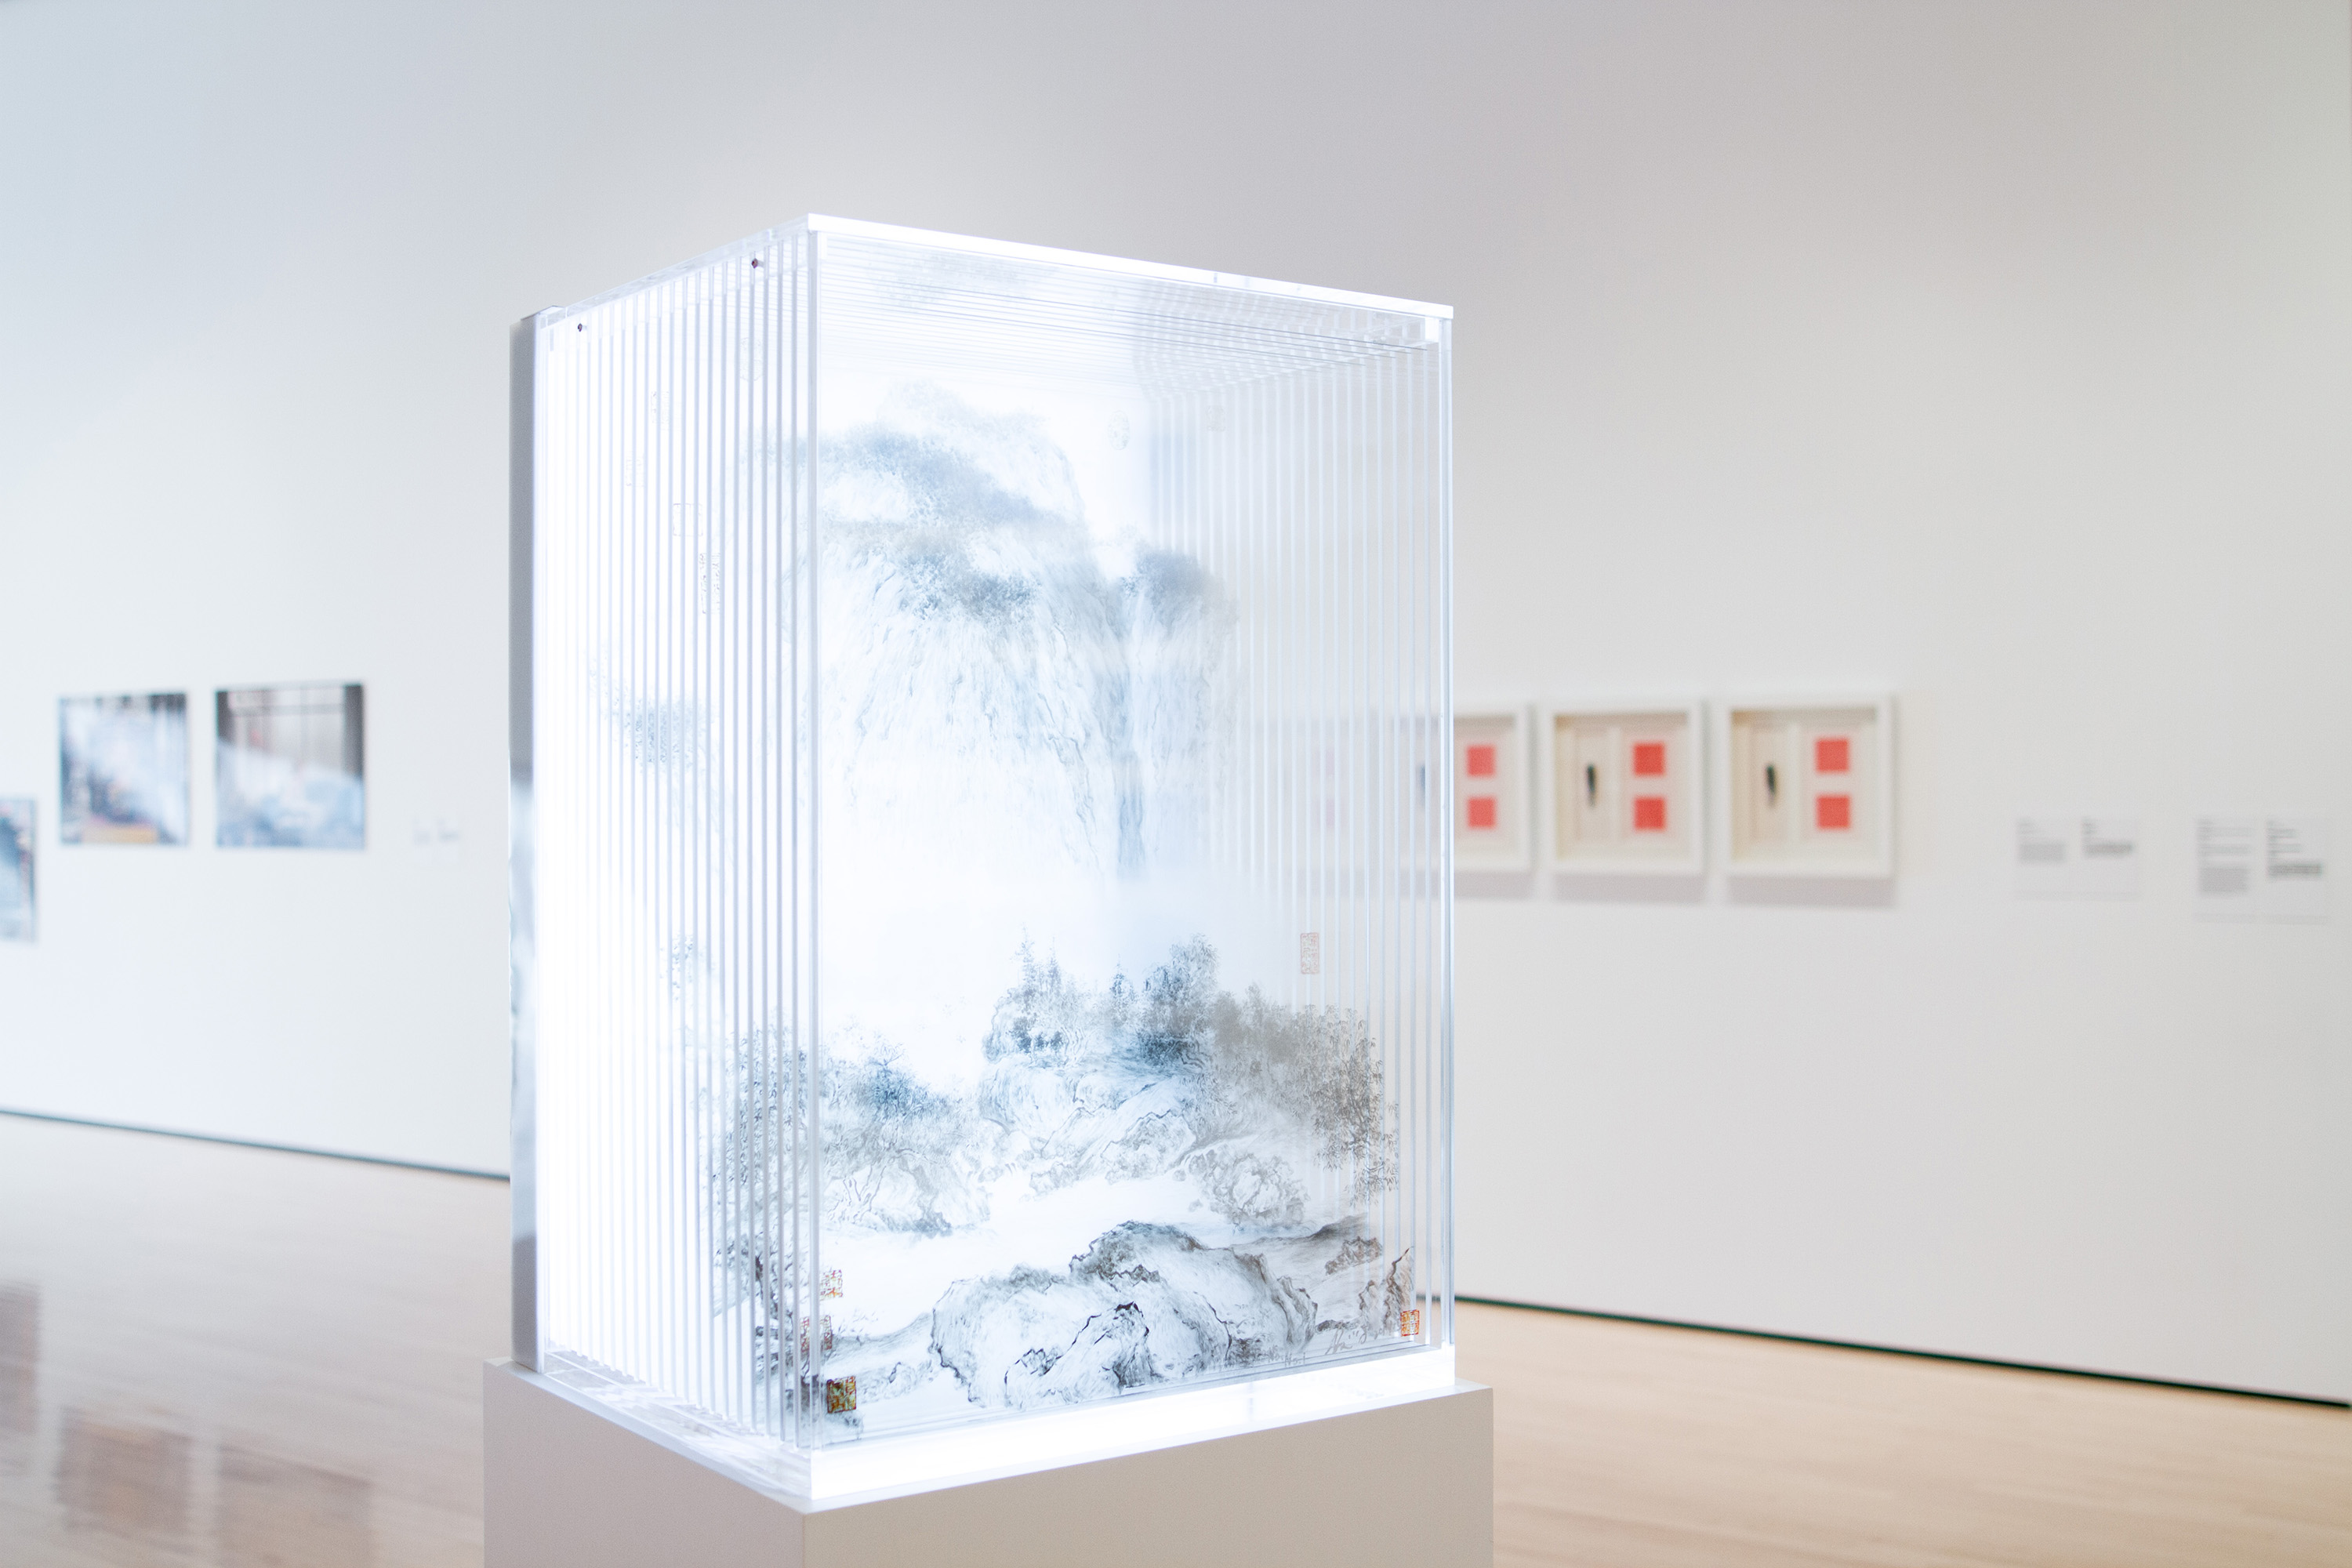 <i>Future Returns: Contemporary Art from China</i>, installation view at the Eli and Edythe Broad Art Museum at Michigan State University, 2014. Photo: Eat Pomegranate Photography